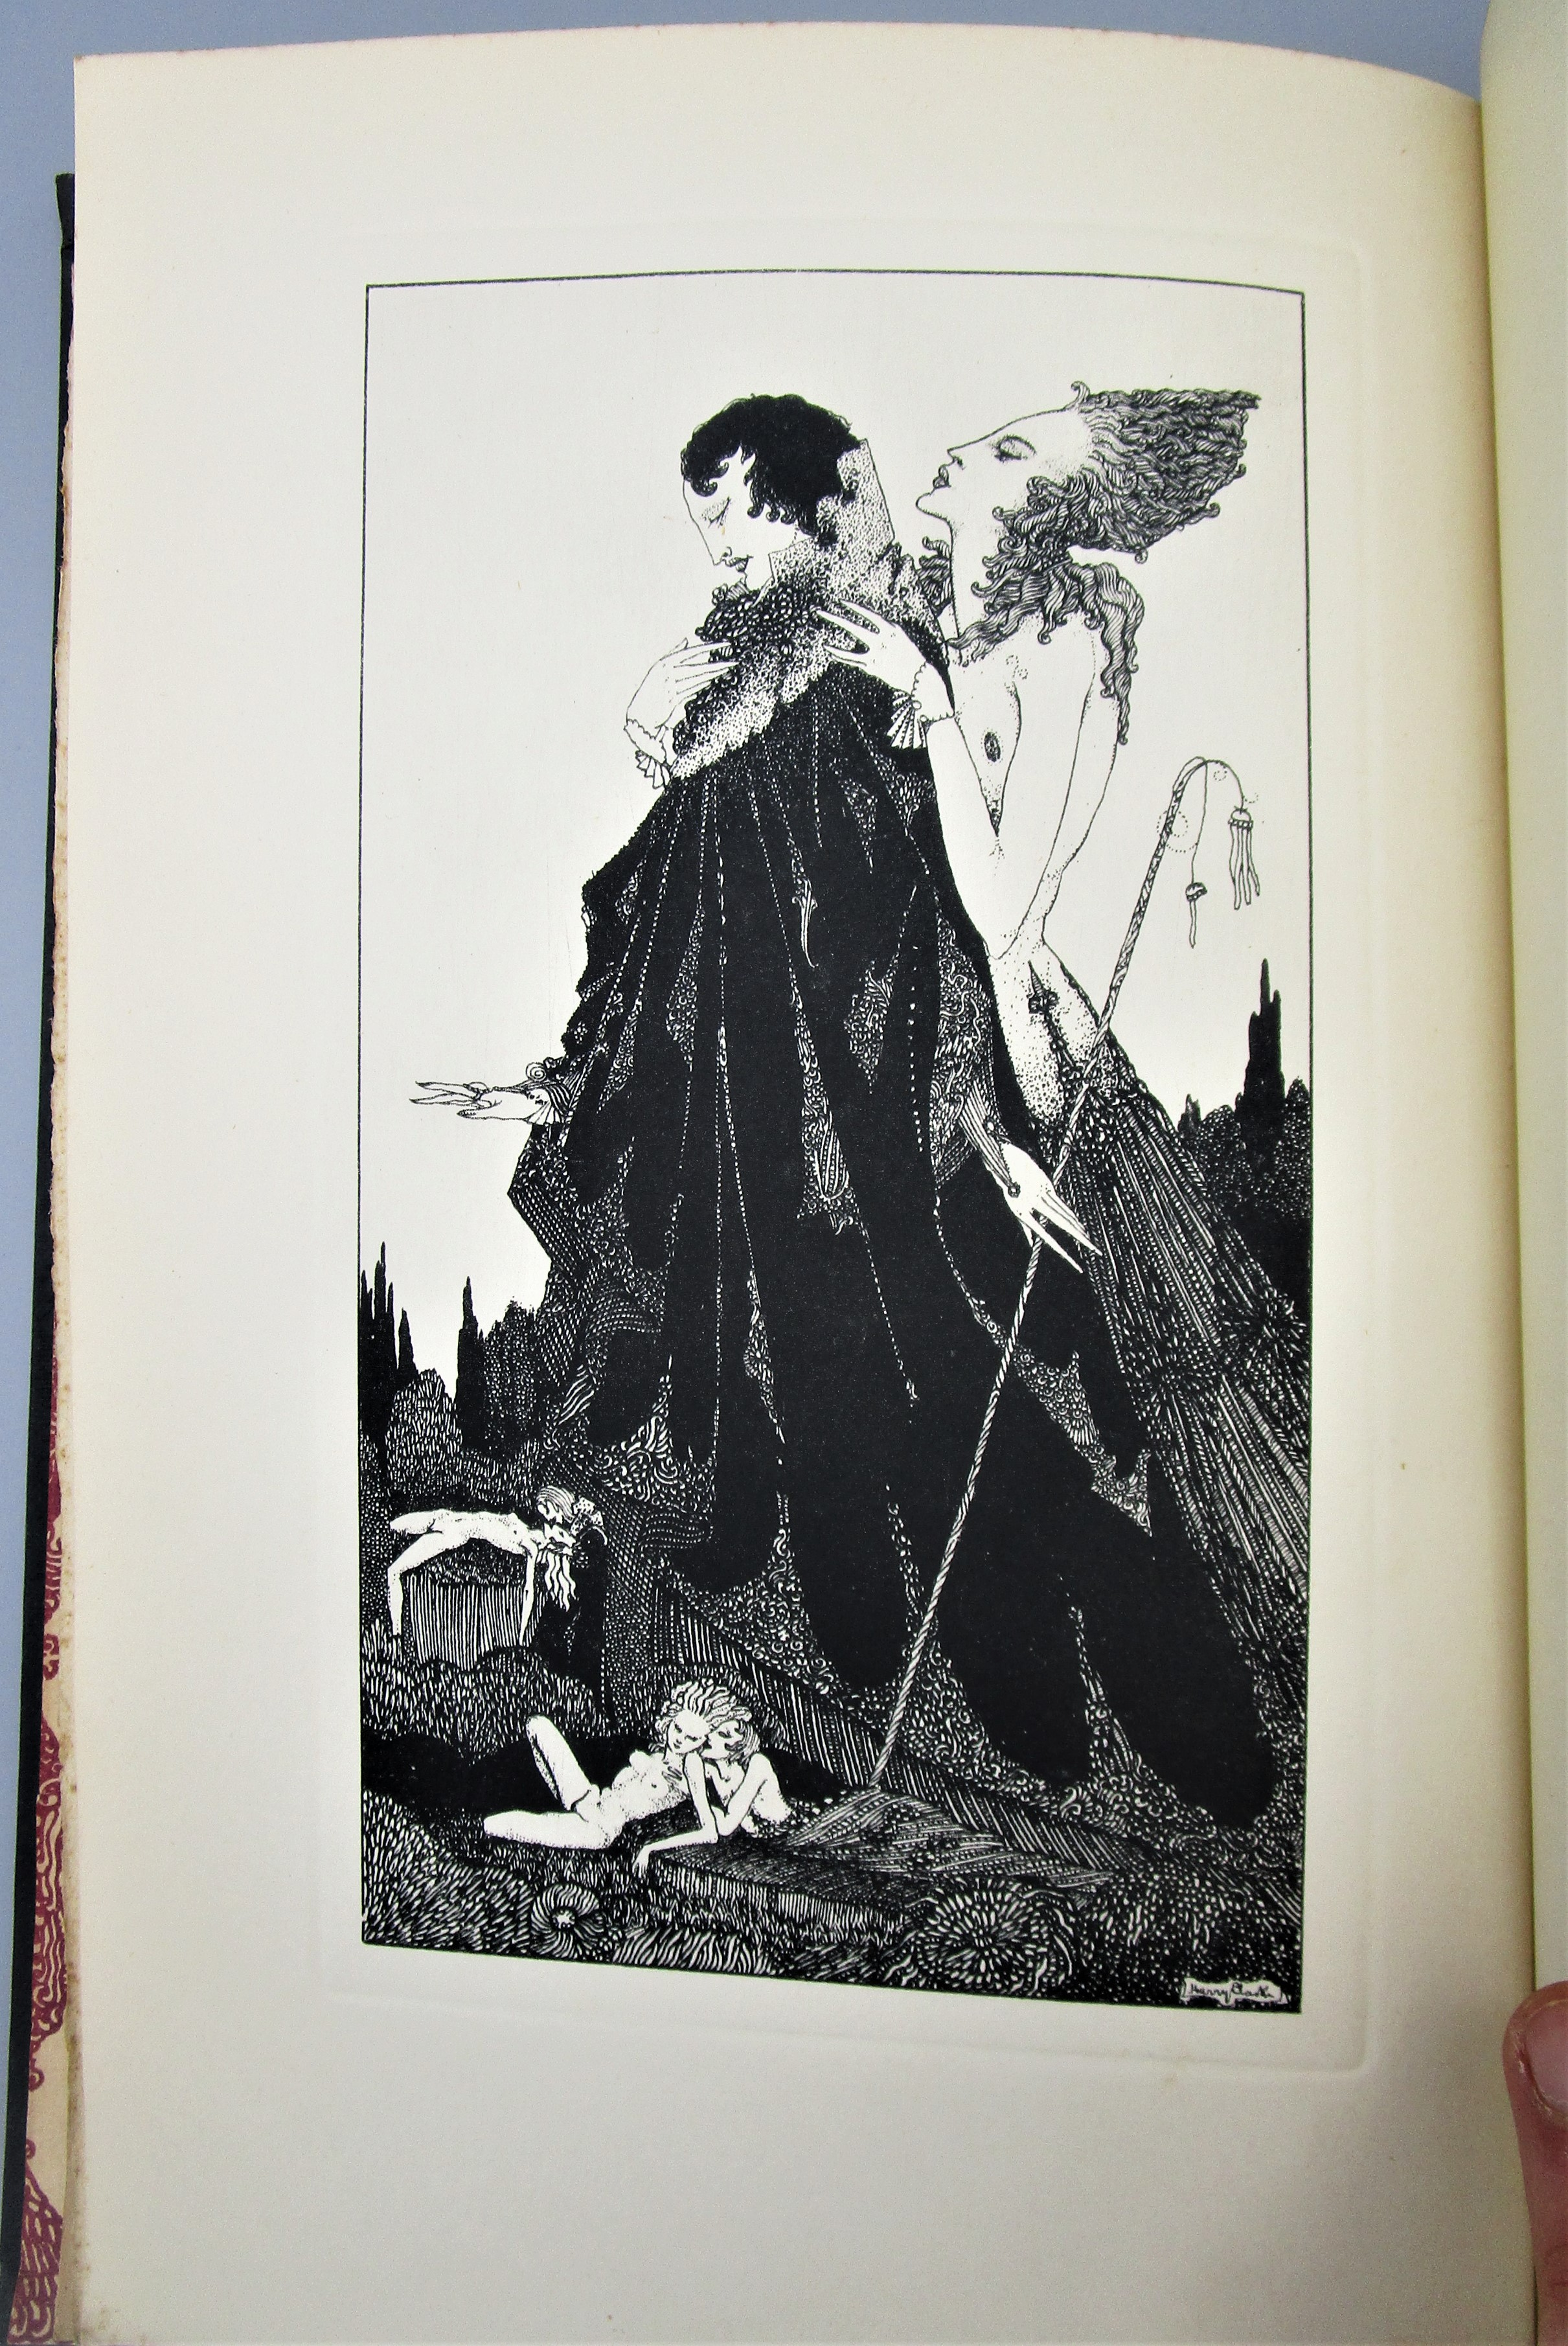 SELECTED POEMS OF ALGERNON CHARLES SWINBURNE, illus. by H. Clarke - 1928 [1st Ed]